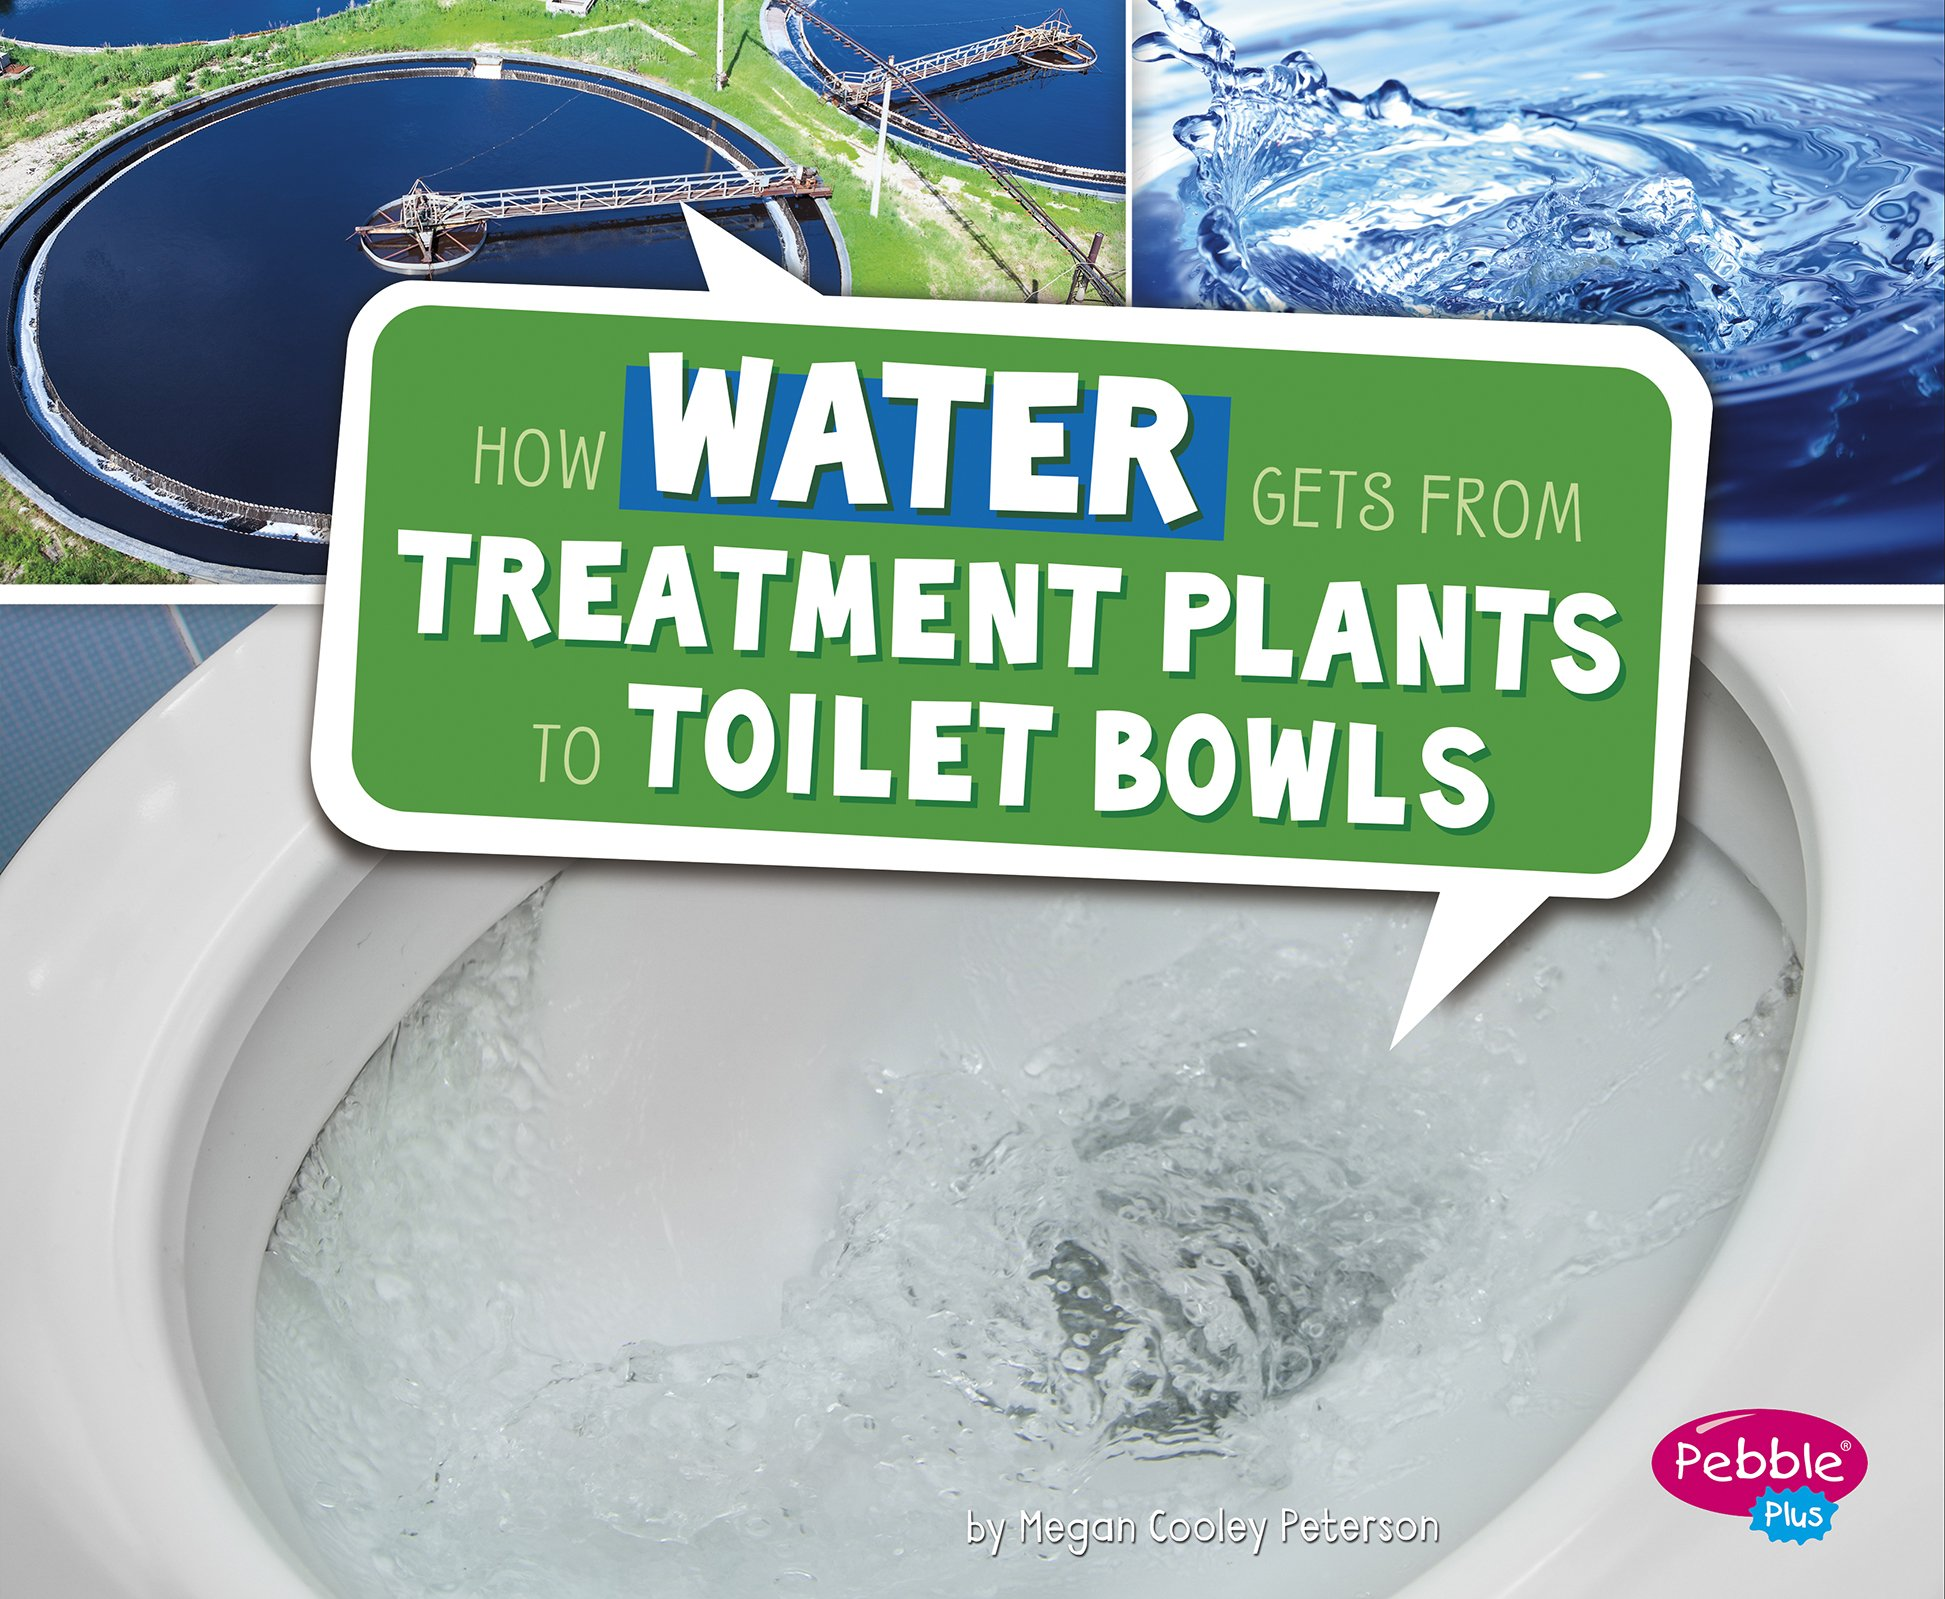 How Water Gets from Treatment Plants to Toilet Bowls (Here to There)